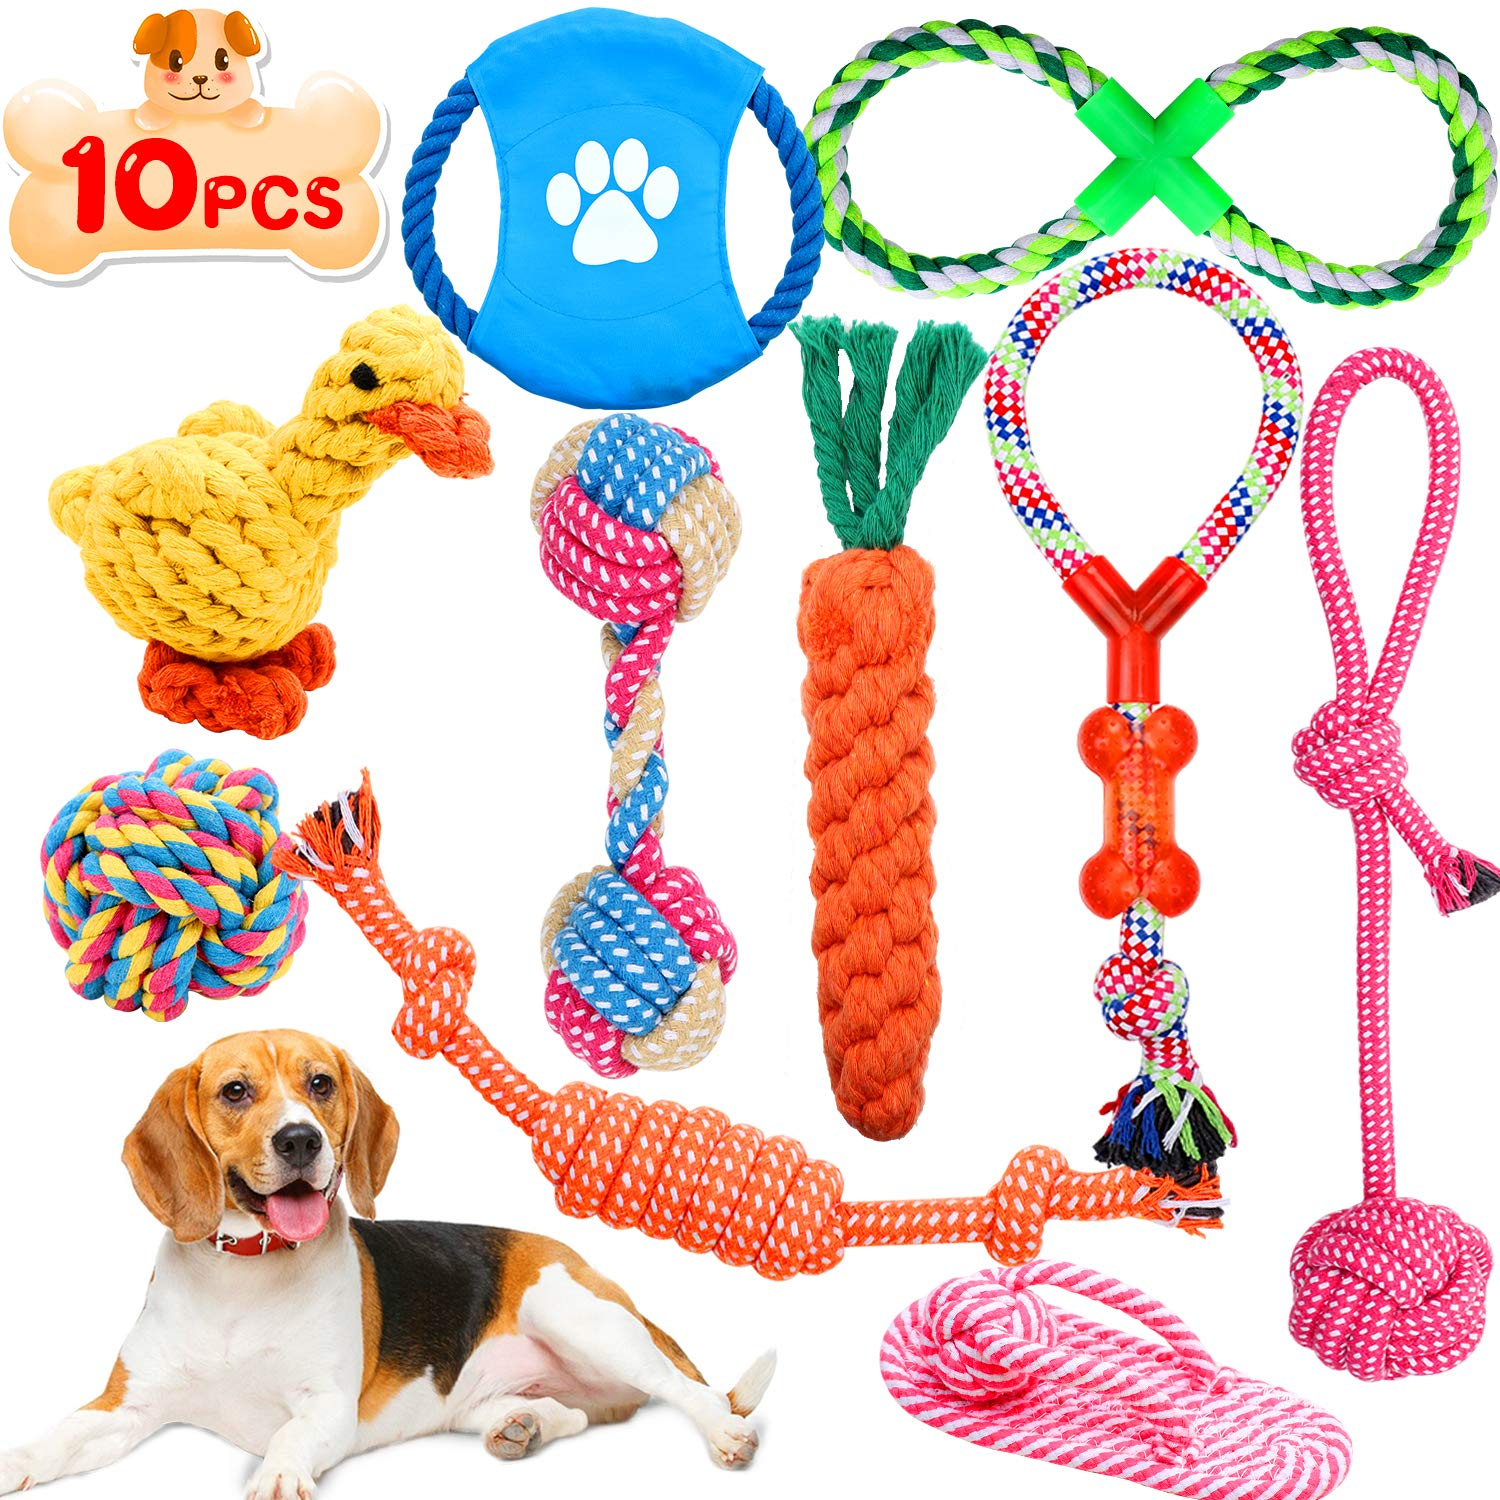 Wimypet 10 Pcs Dog Toys Puppy Chew Rope Toys Set, Natural Braided Cotton Rope Toys for Dogs Pets - Interactive Dog Toys with Frisbee Ball Duck Slipper Knots, Teeth Cleaning for Small and Medium Dogs